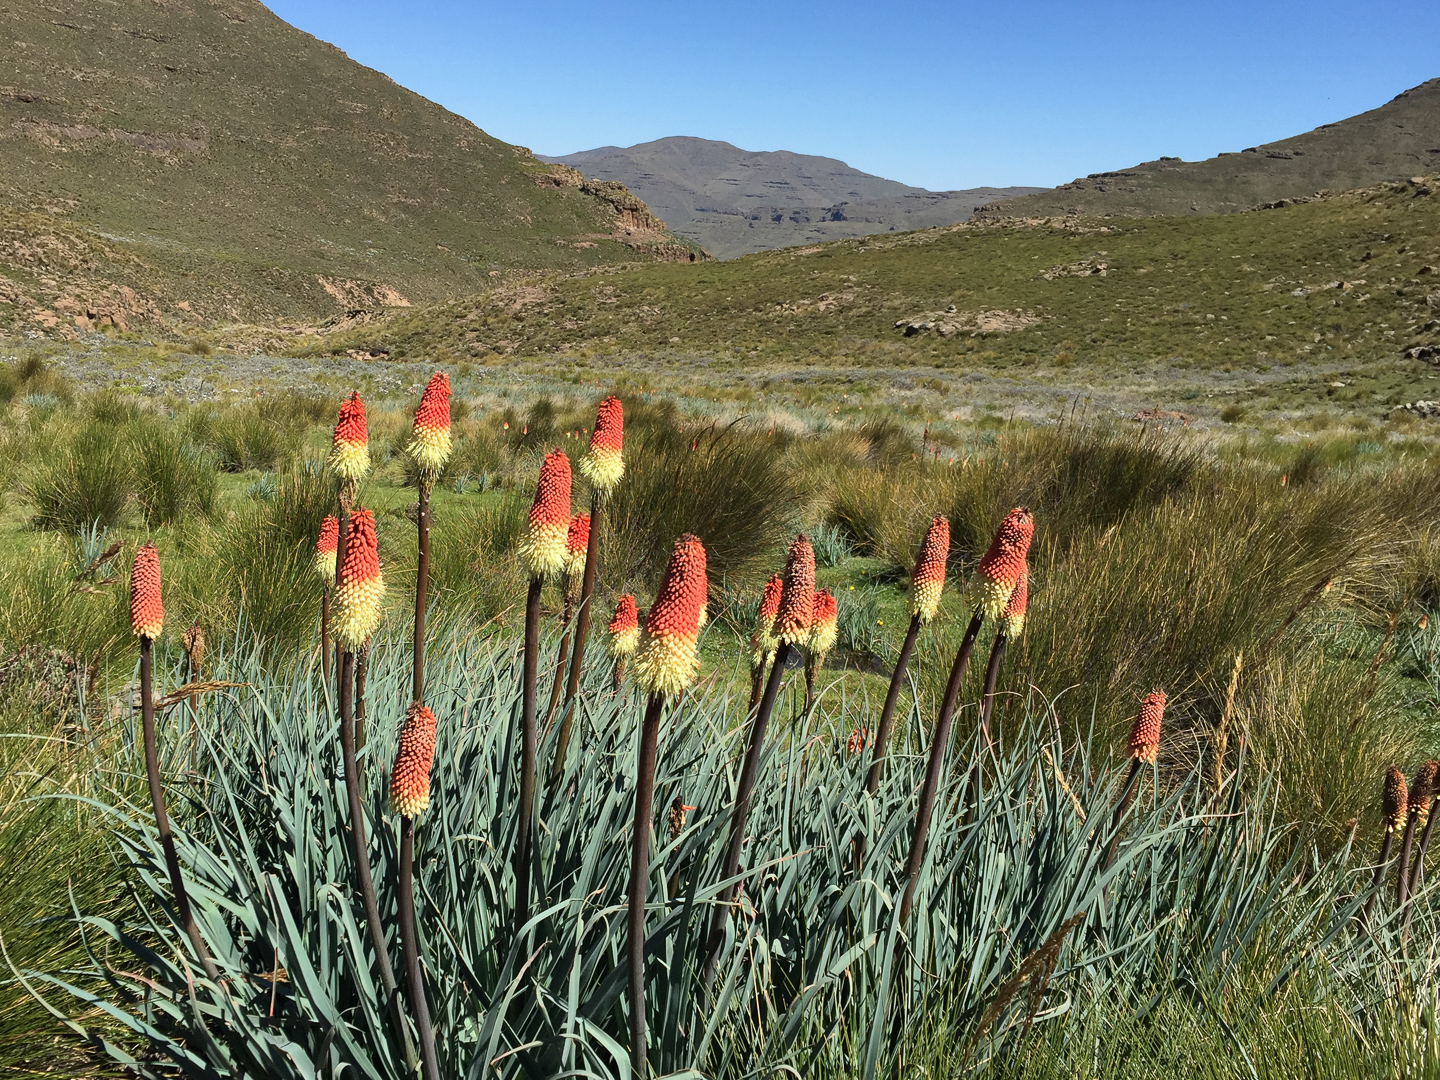 Red Hot Pokers were a regular site in boggy areas in the valley